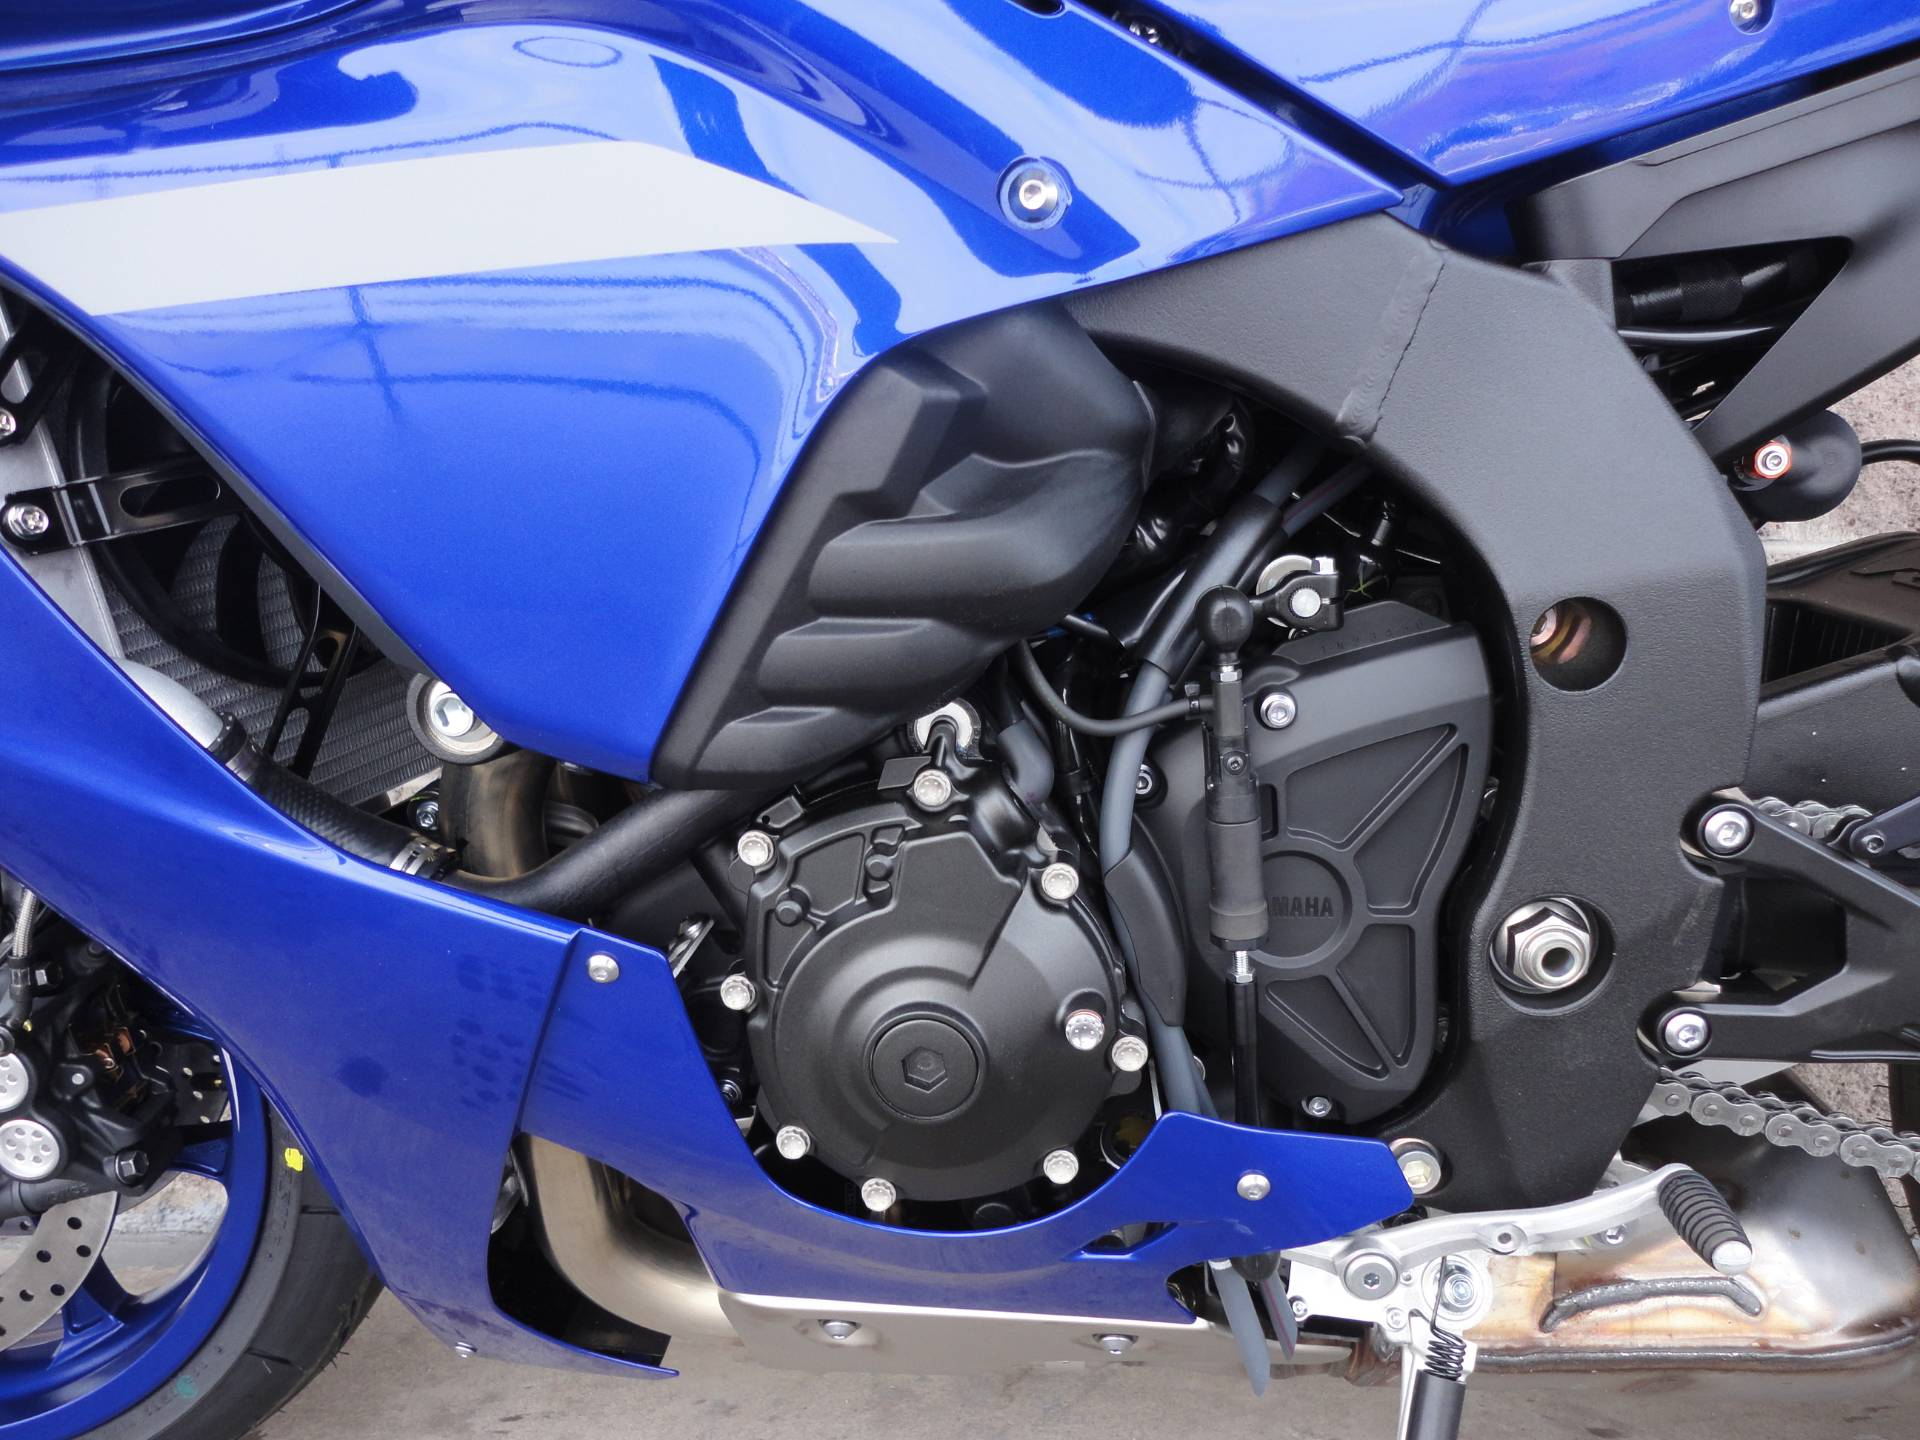 2020 Yamaha YZF-R1 in Denver, Colorado - Photo 5